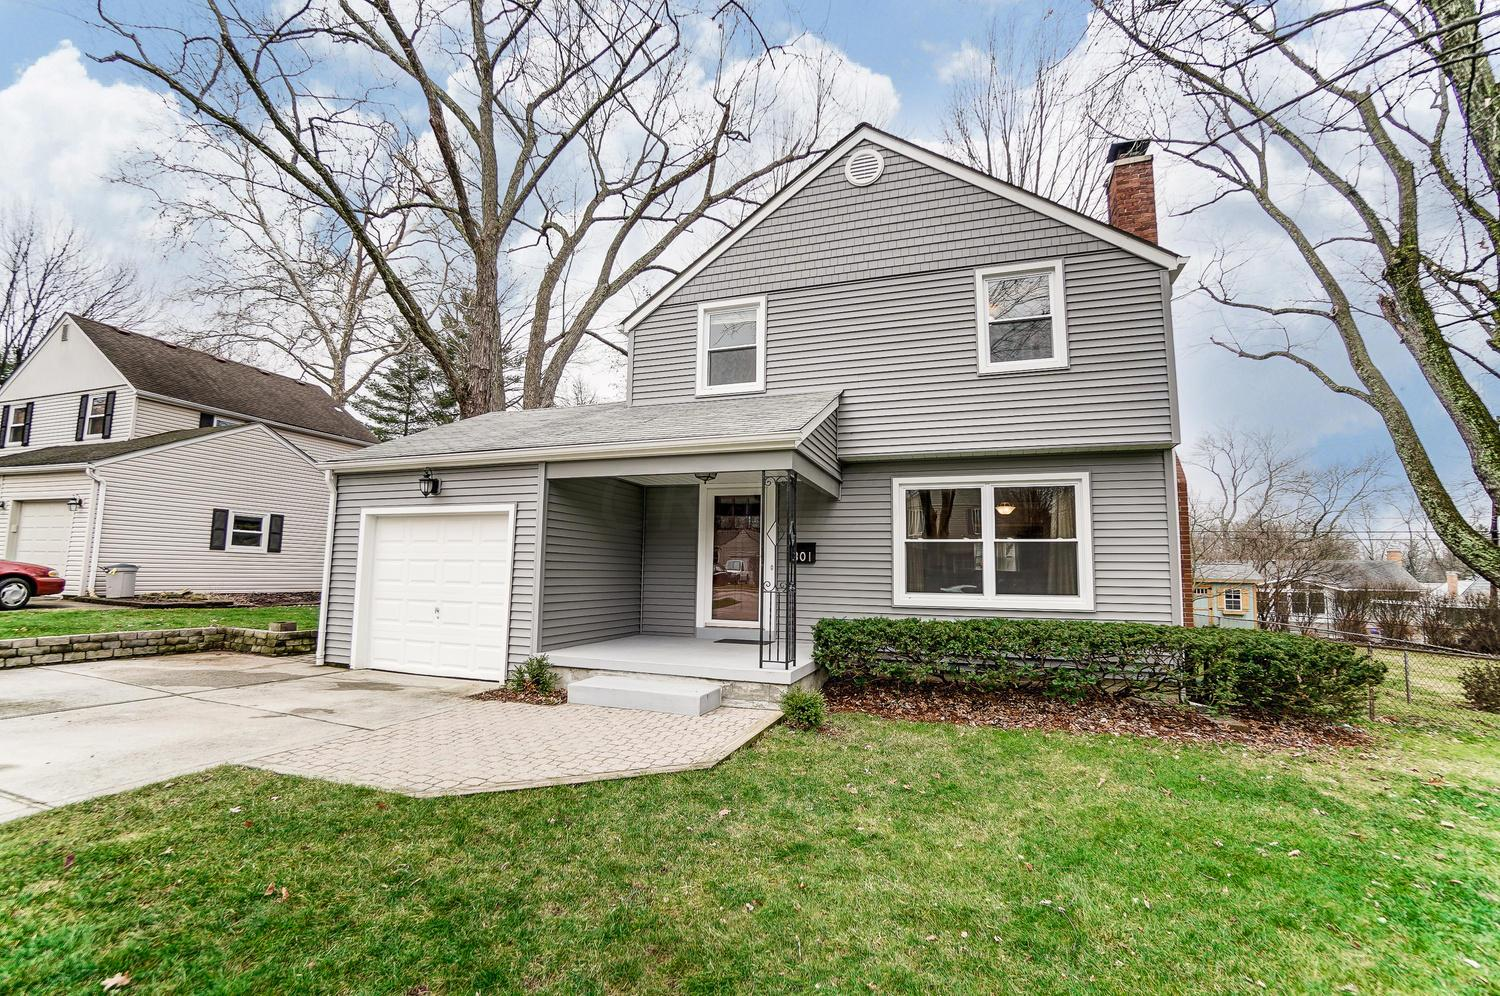 Photo of 301 Colonial Avenue, Worthington, OH 43085